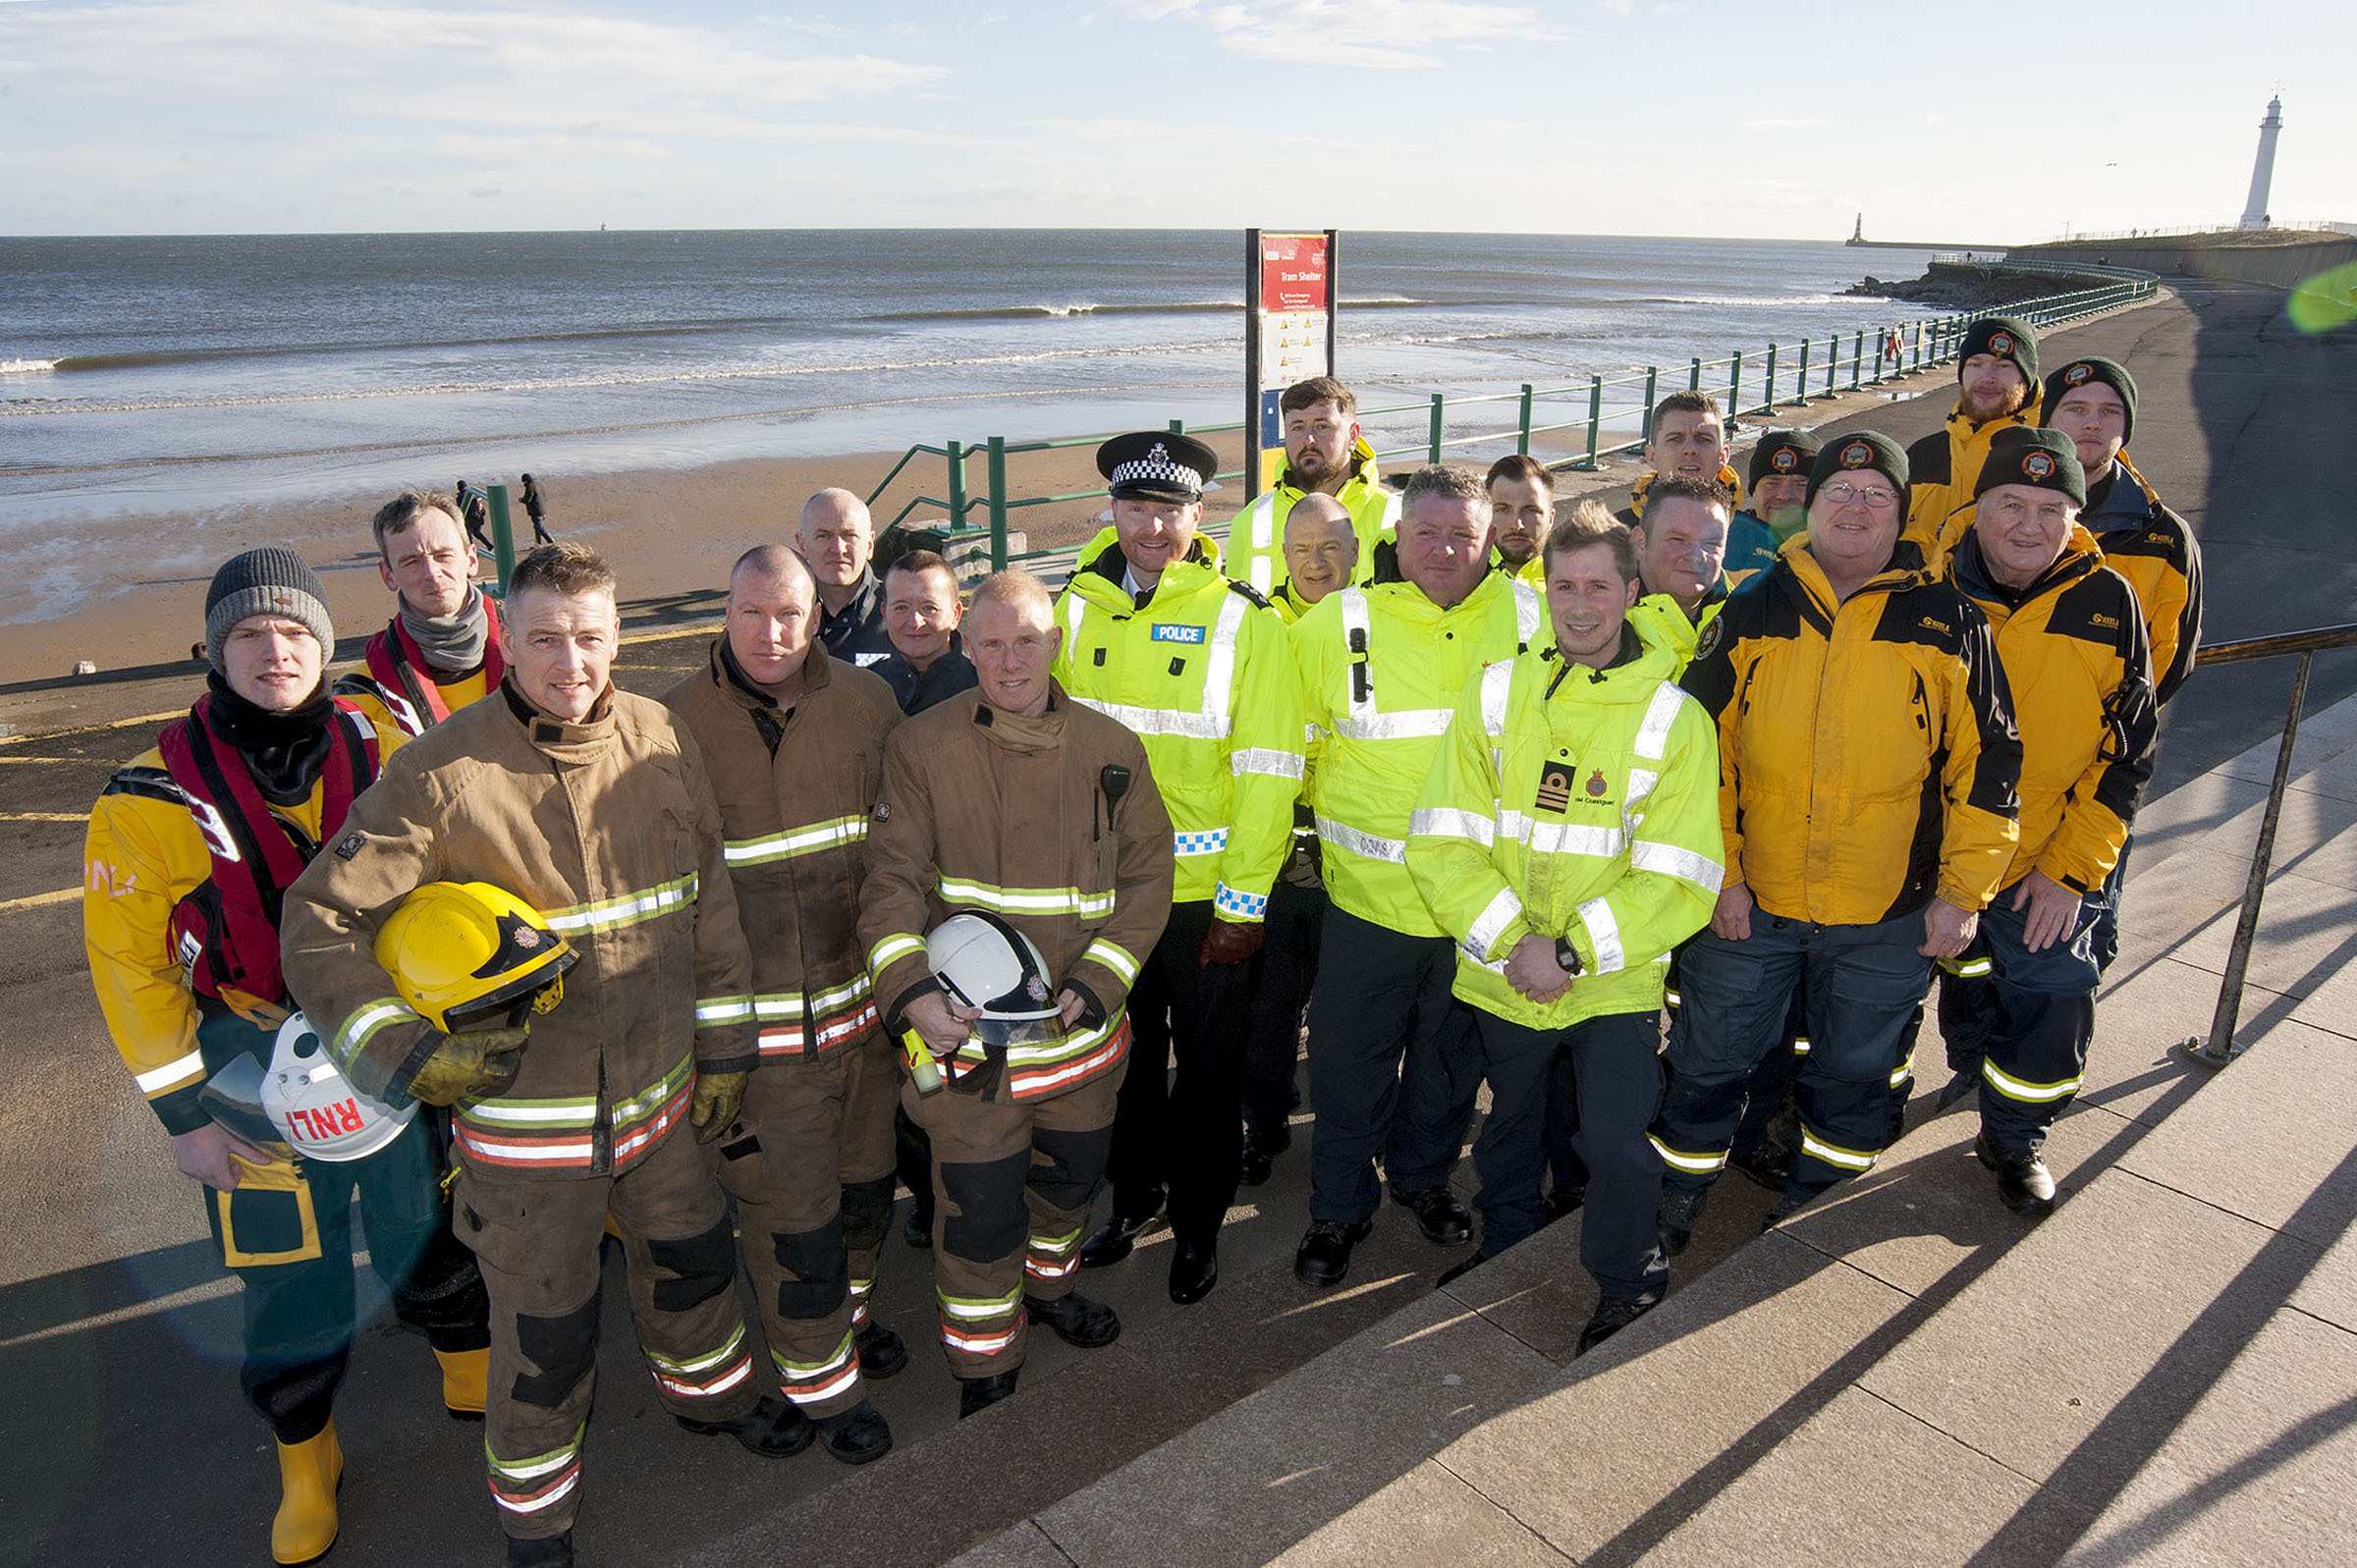 The crews that took part in the search and rescue